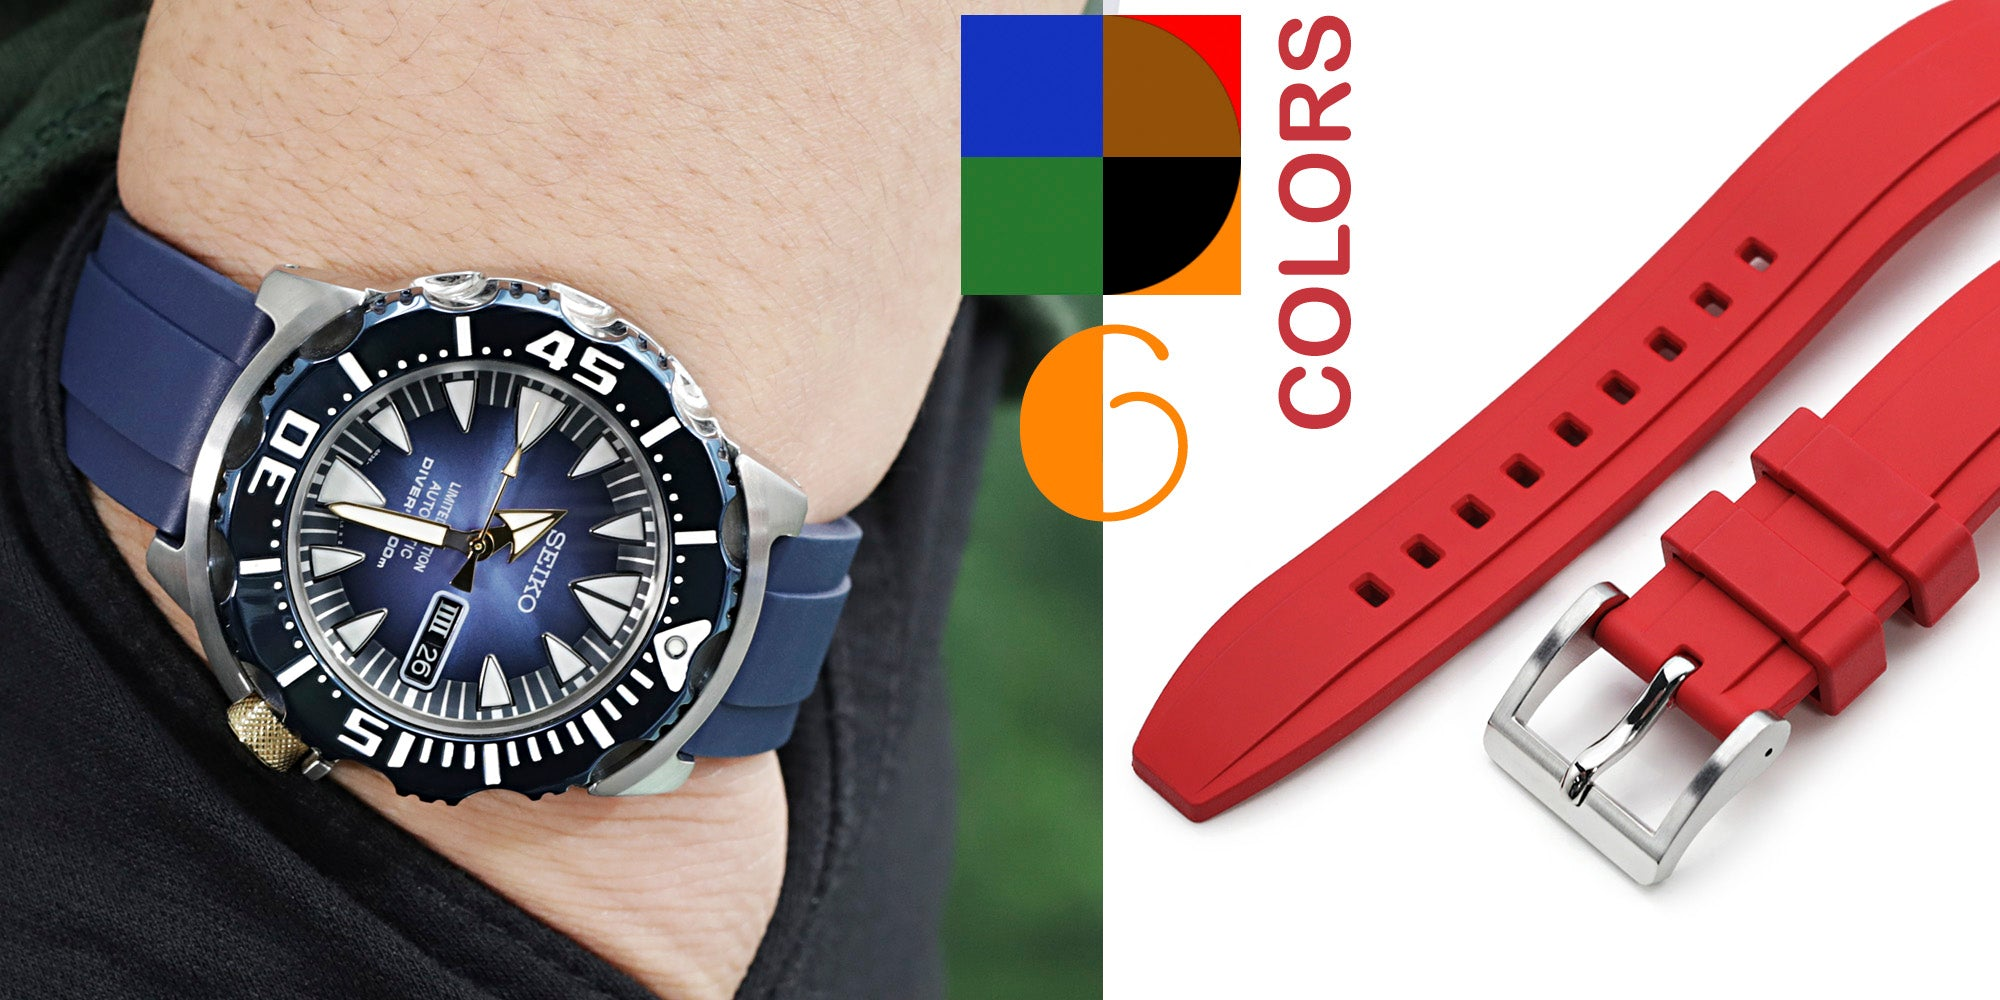 FKM08 rubber watch bands by Strapcode